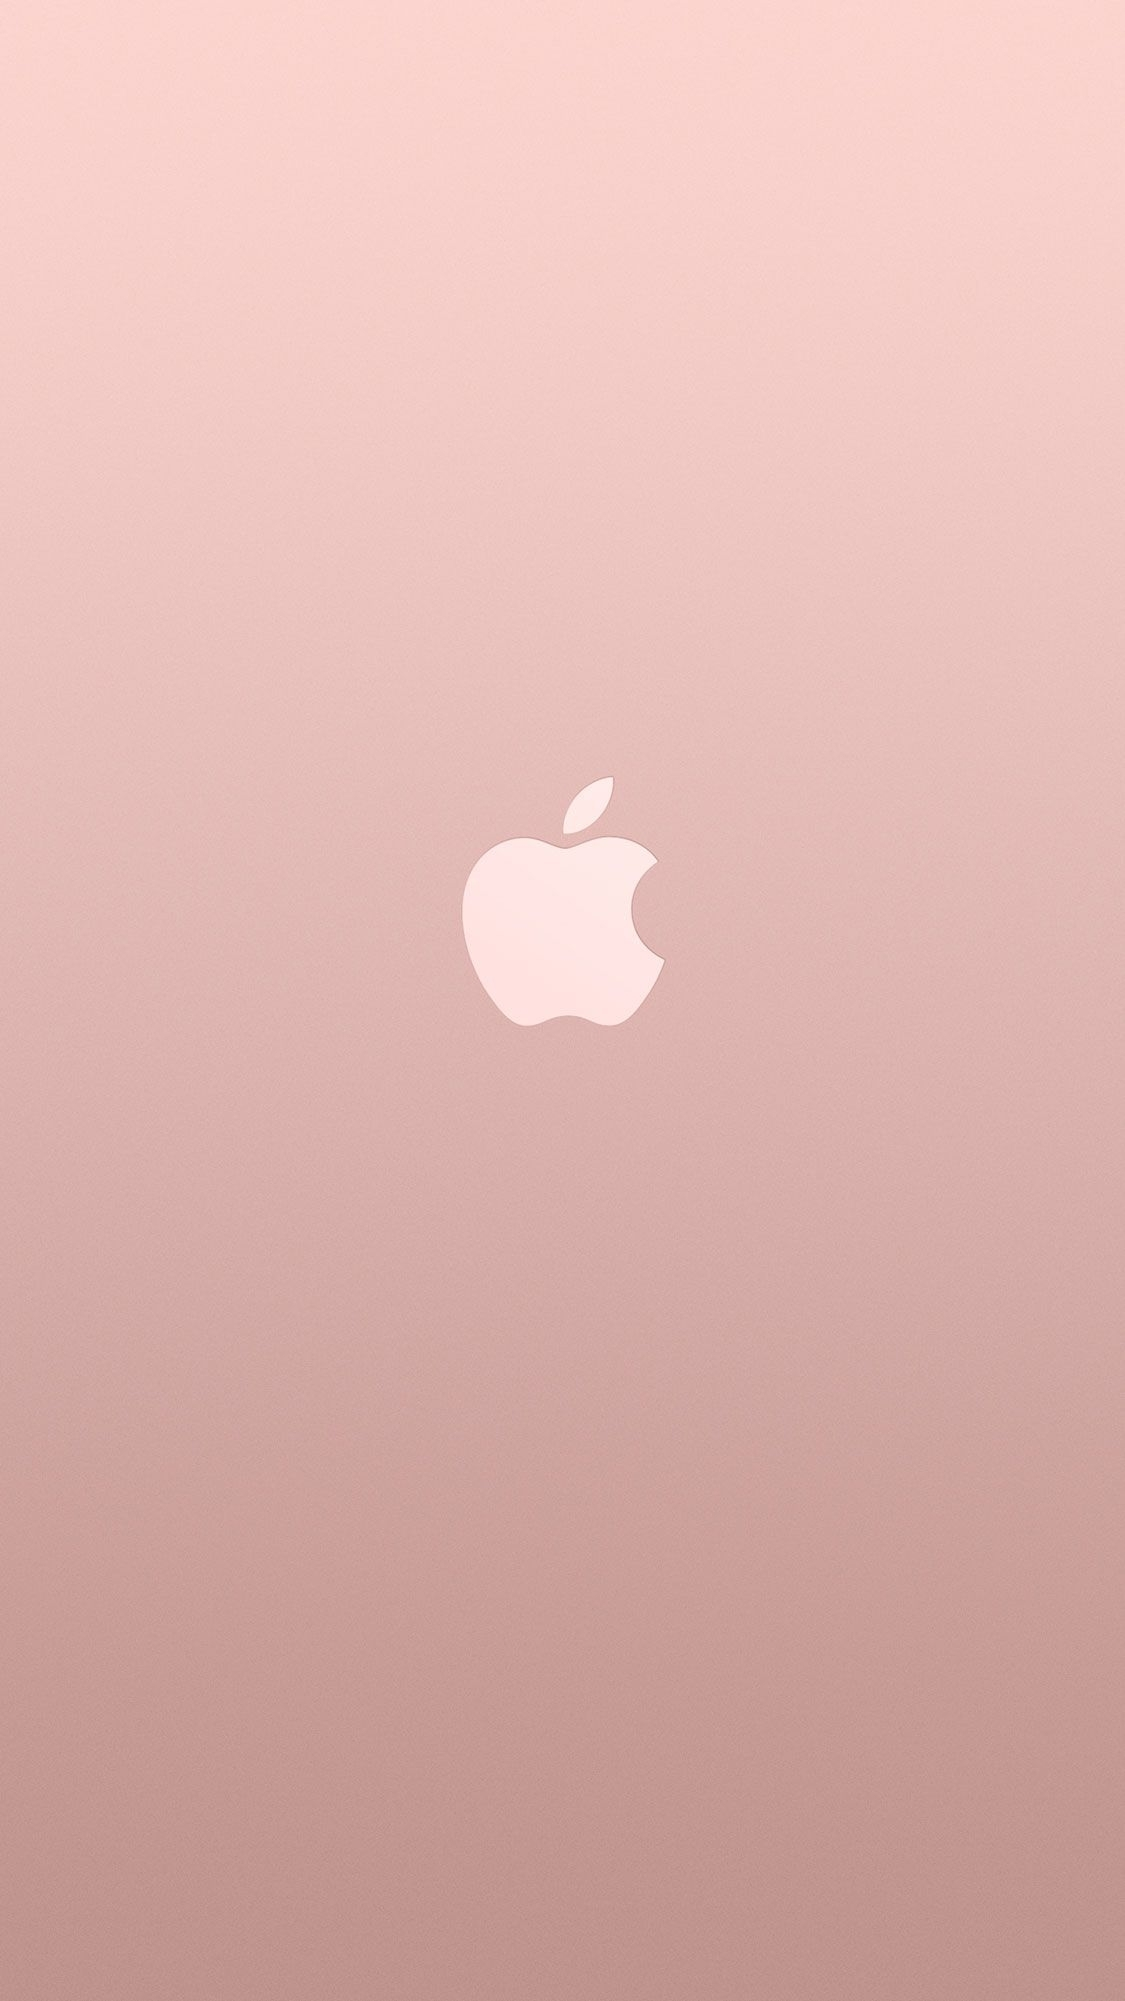 rose-gold-apple-iphone-6s-wallpaper-hd 1,125×2,001 pixeles